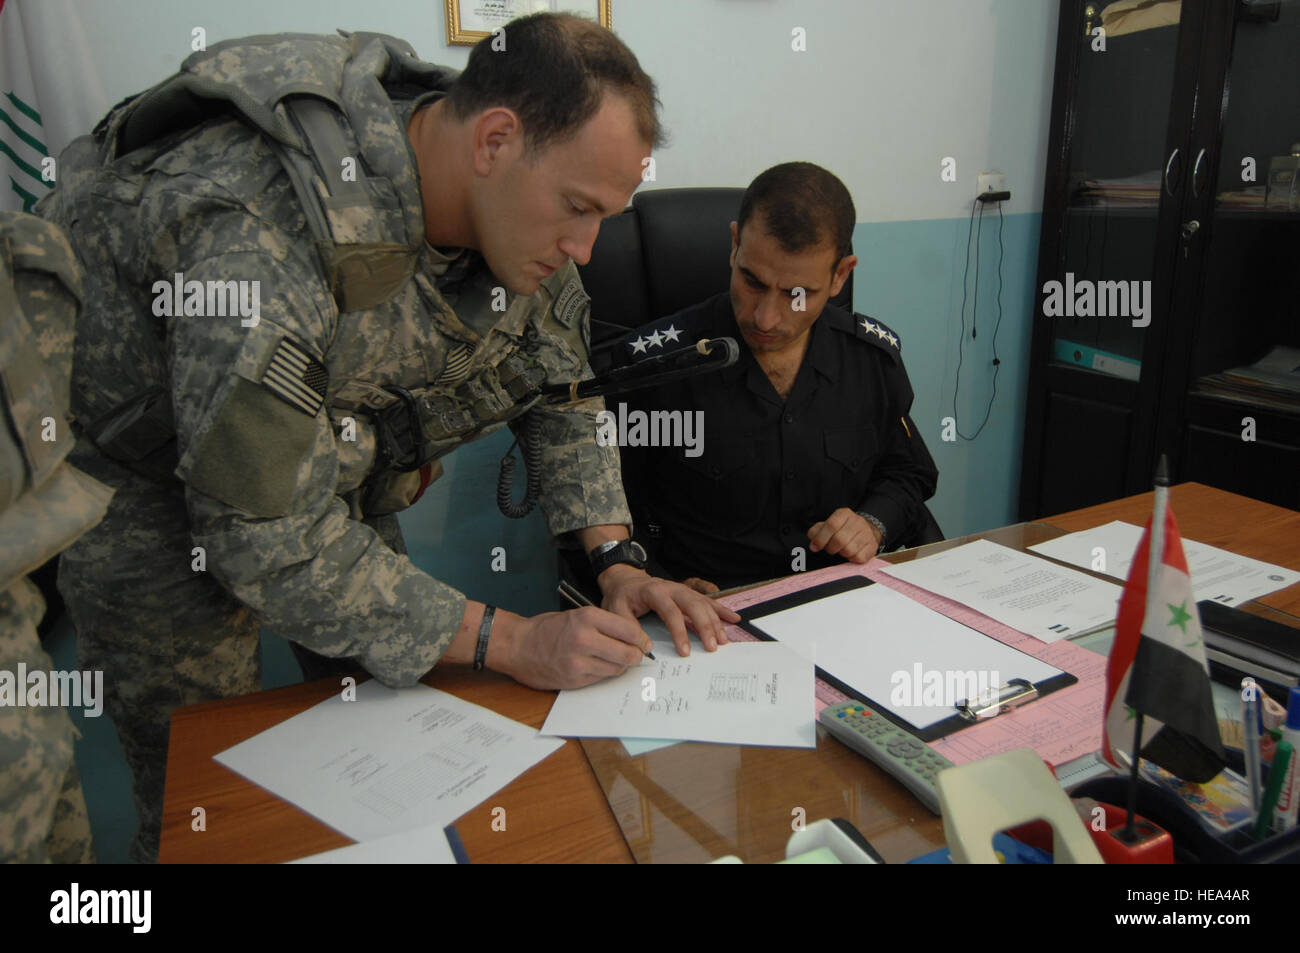 The signing of papers, finalizing the Joint Coordination Center handover from Alpha Company, 1st Battalion, 87th - Stock Image